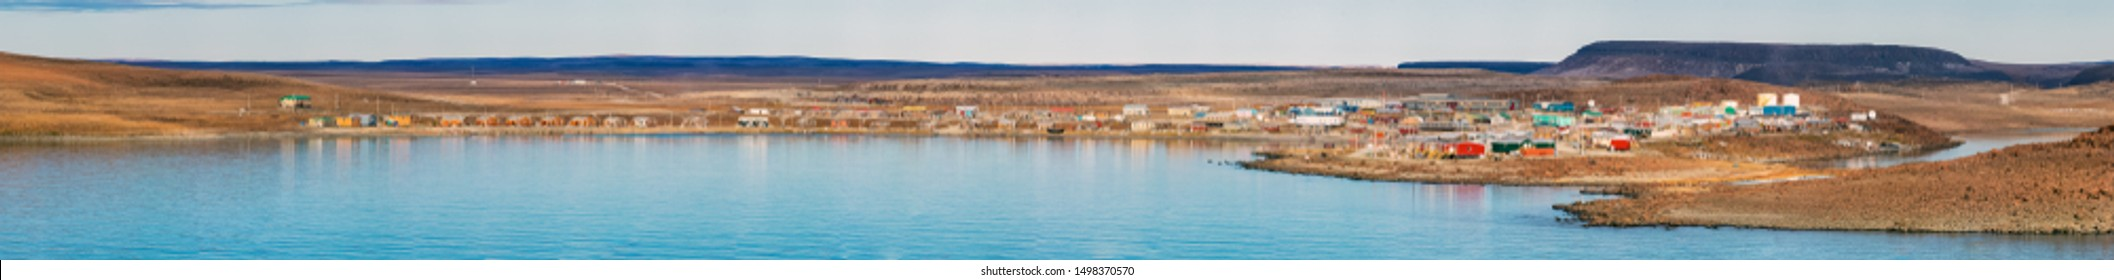 The Coast line of Ulukhaktok located on the west side of VictoriaIsland on the Amundsen Gulf in the  Northwest Territories, Canada.